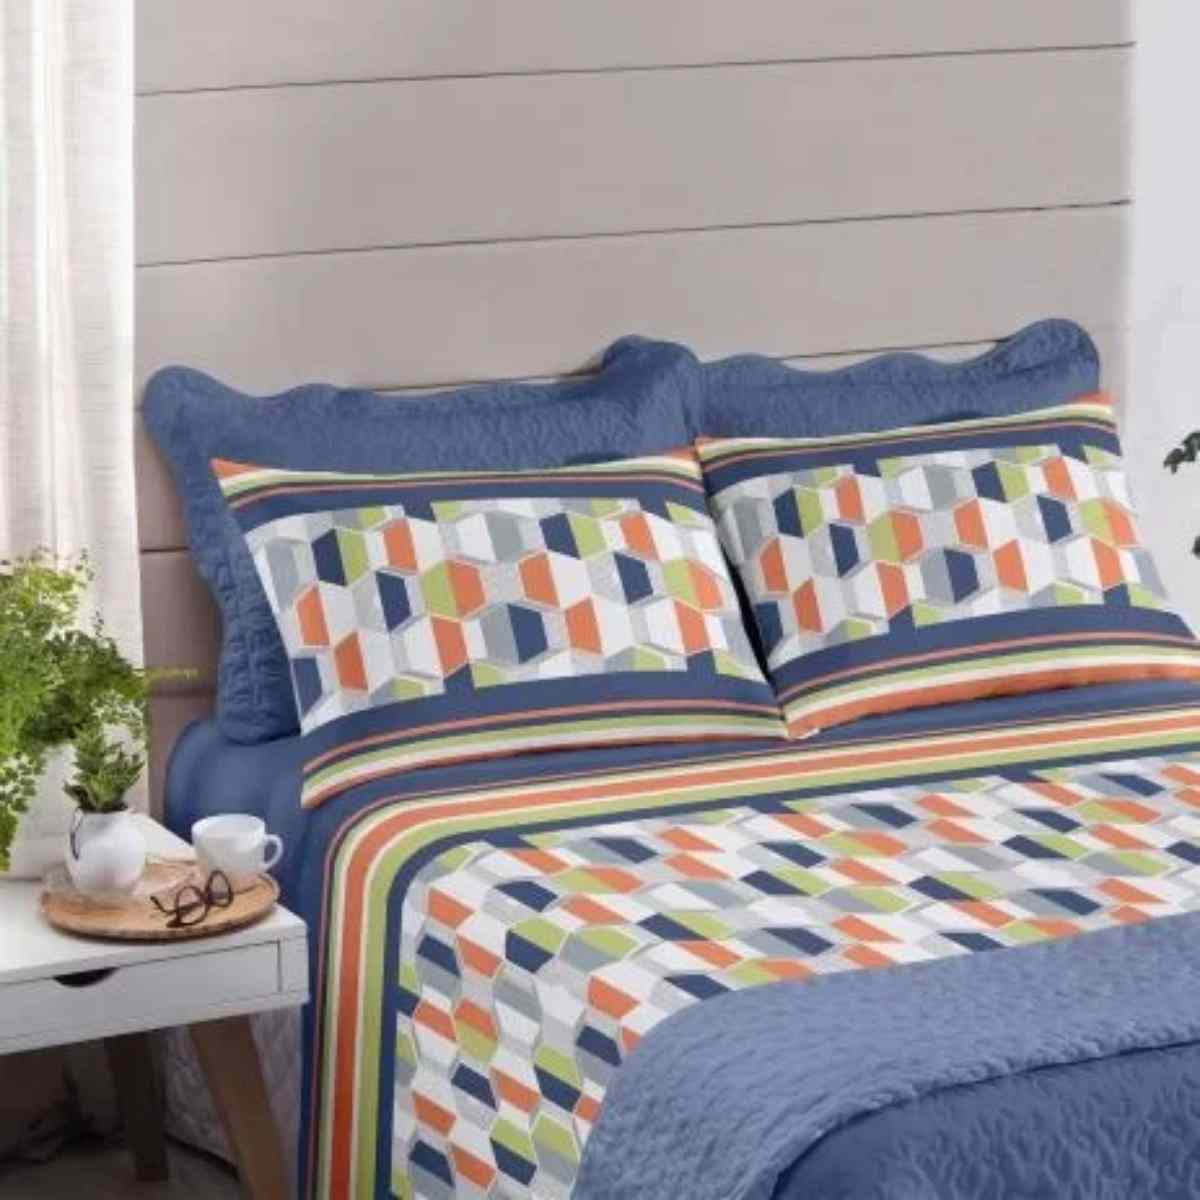 Jg cama royal solt 3pcs. MILLER